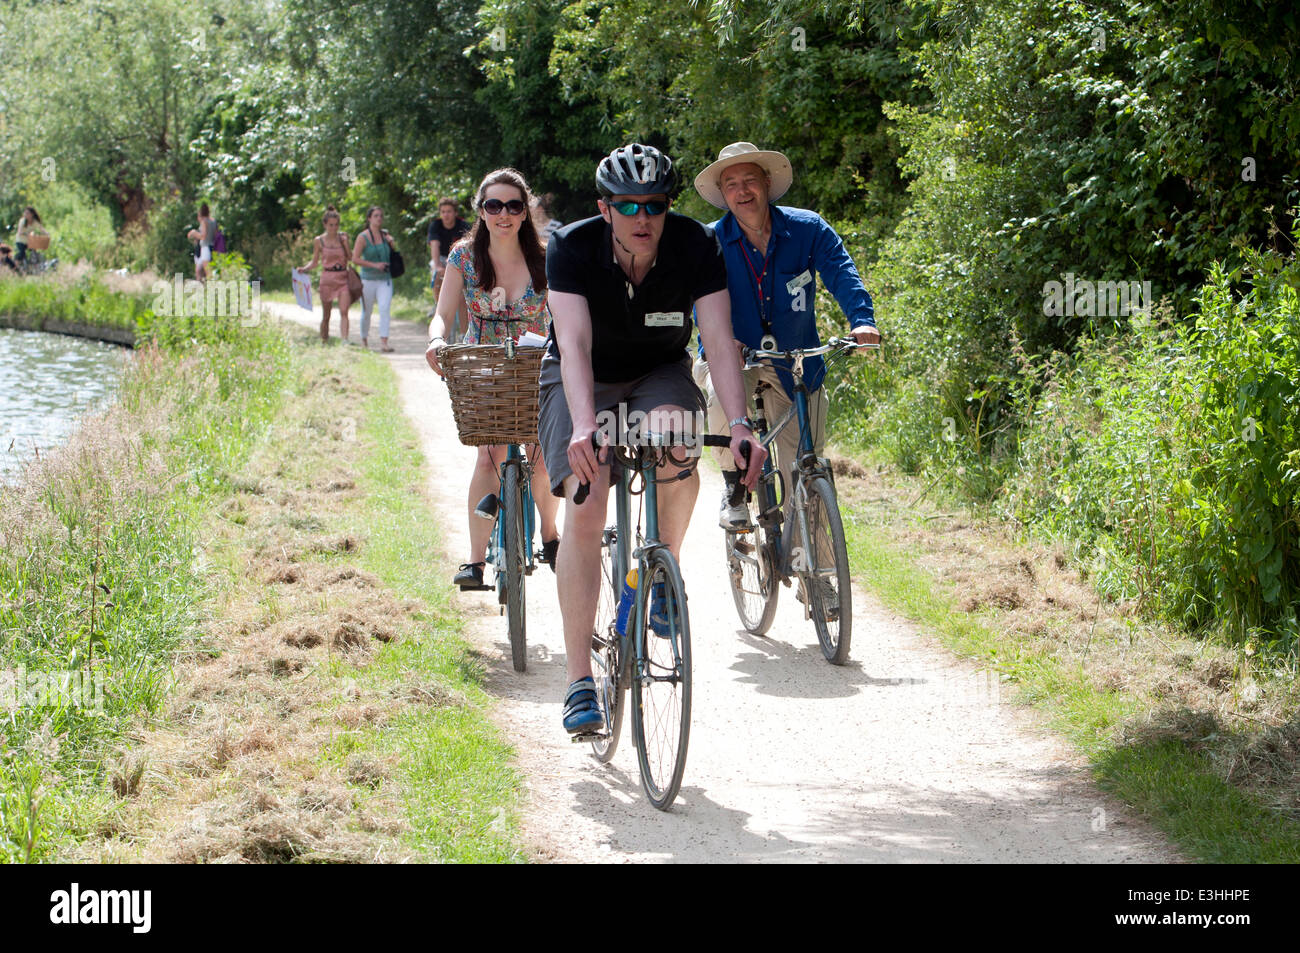 Cambridge May Bumps, towpath cyclists - Stock Image